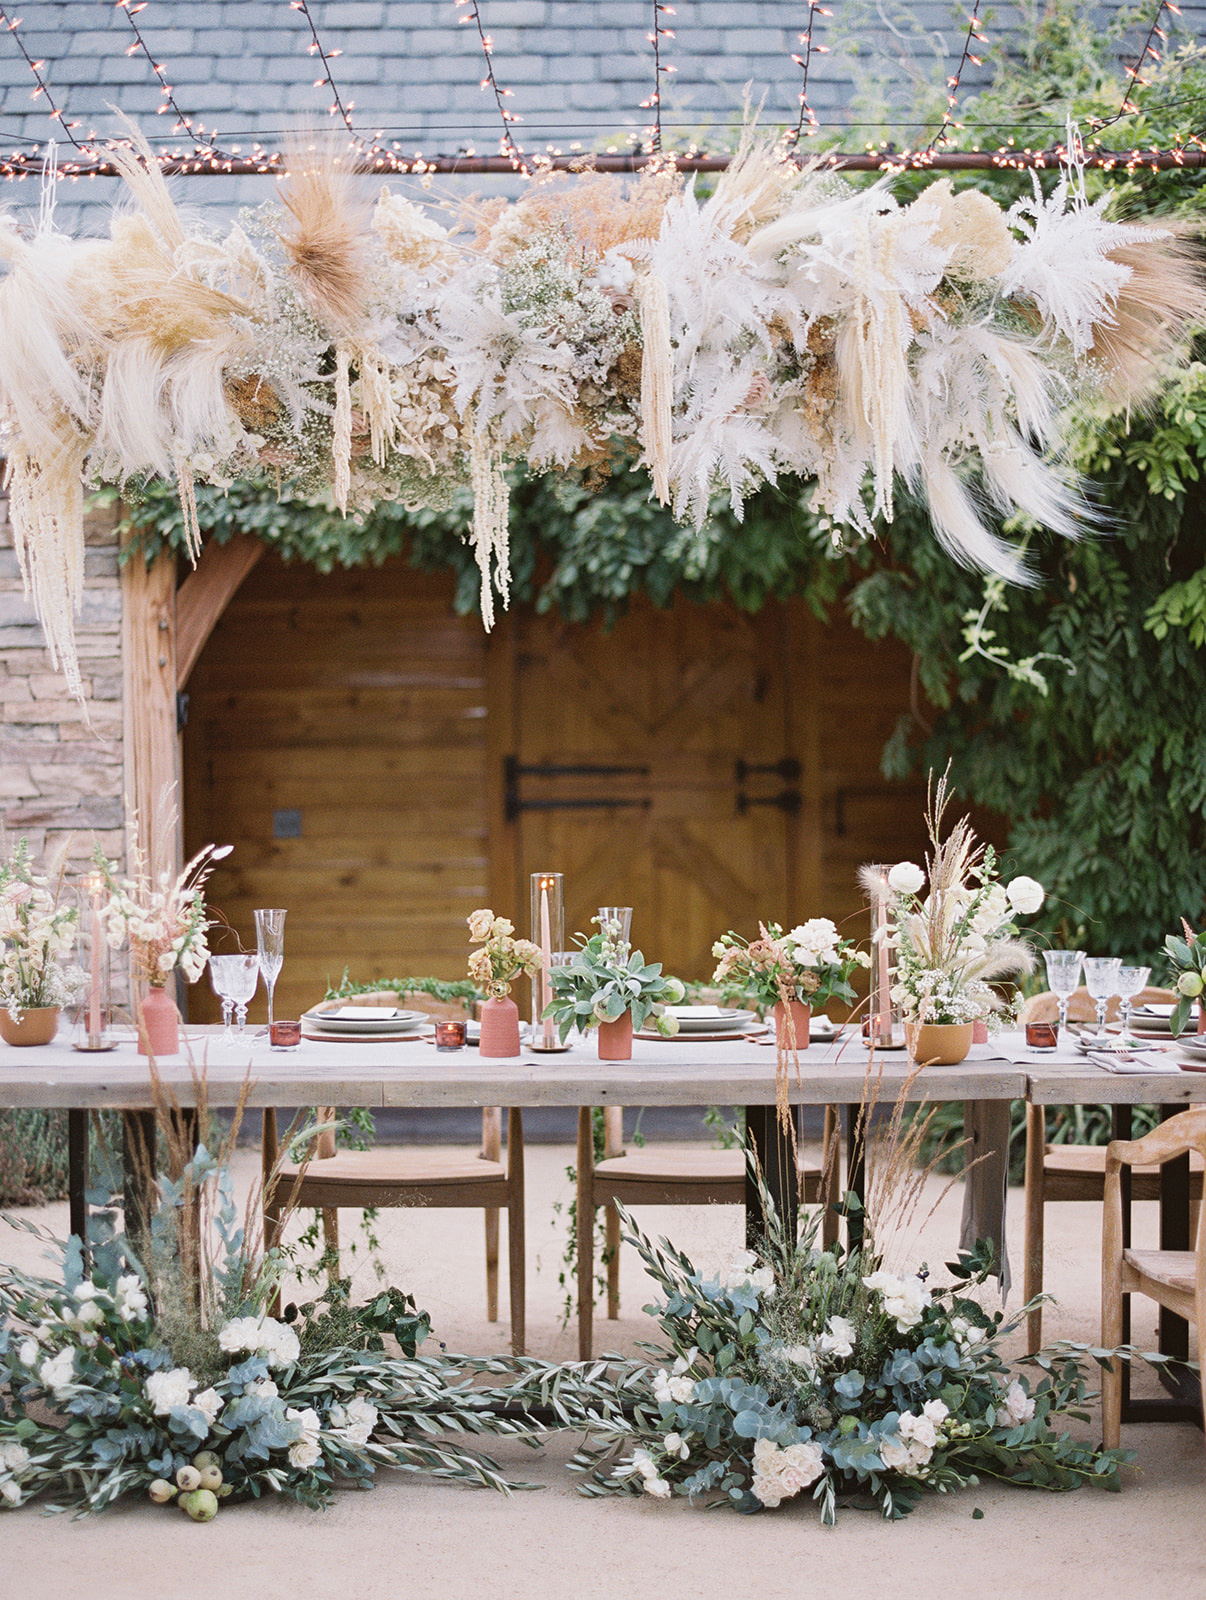 head reception table with rustic greenery and foliage decor